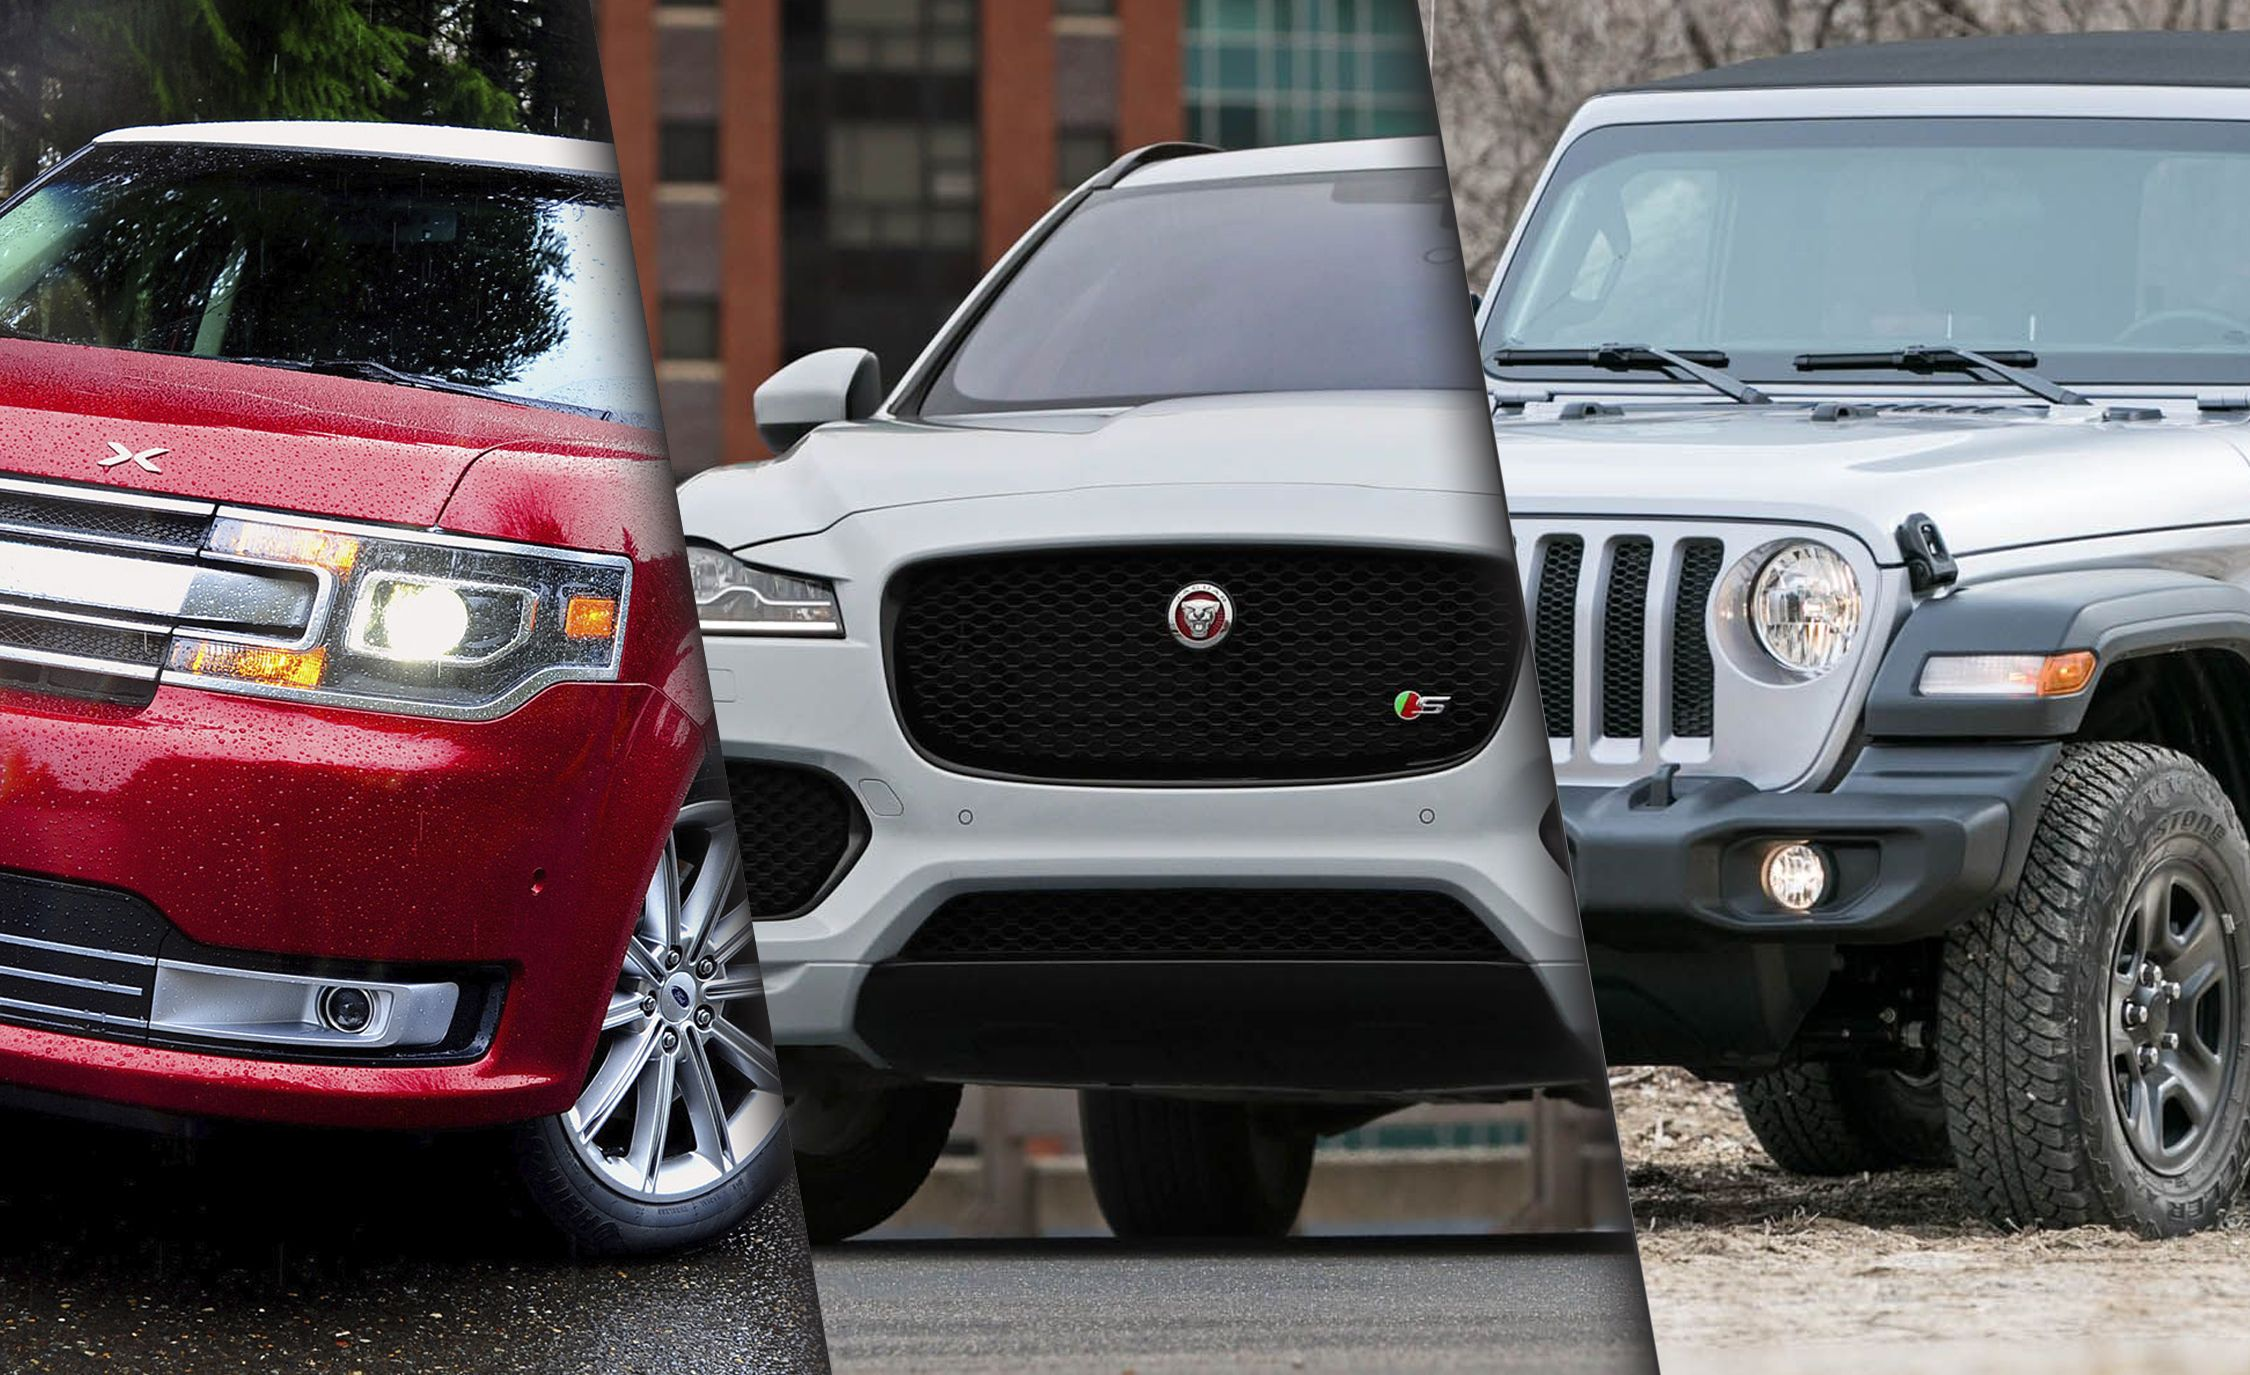 15 Best-Looking SUVs for Sale in 2018 - Most Beautiful